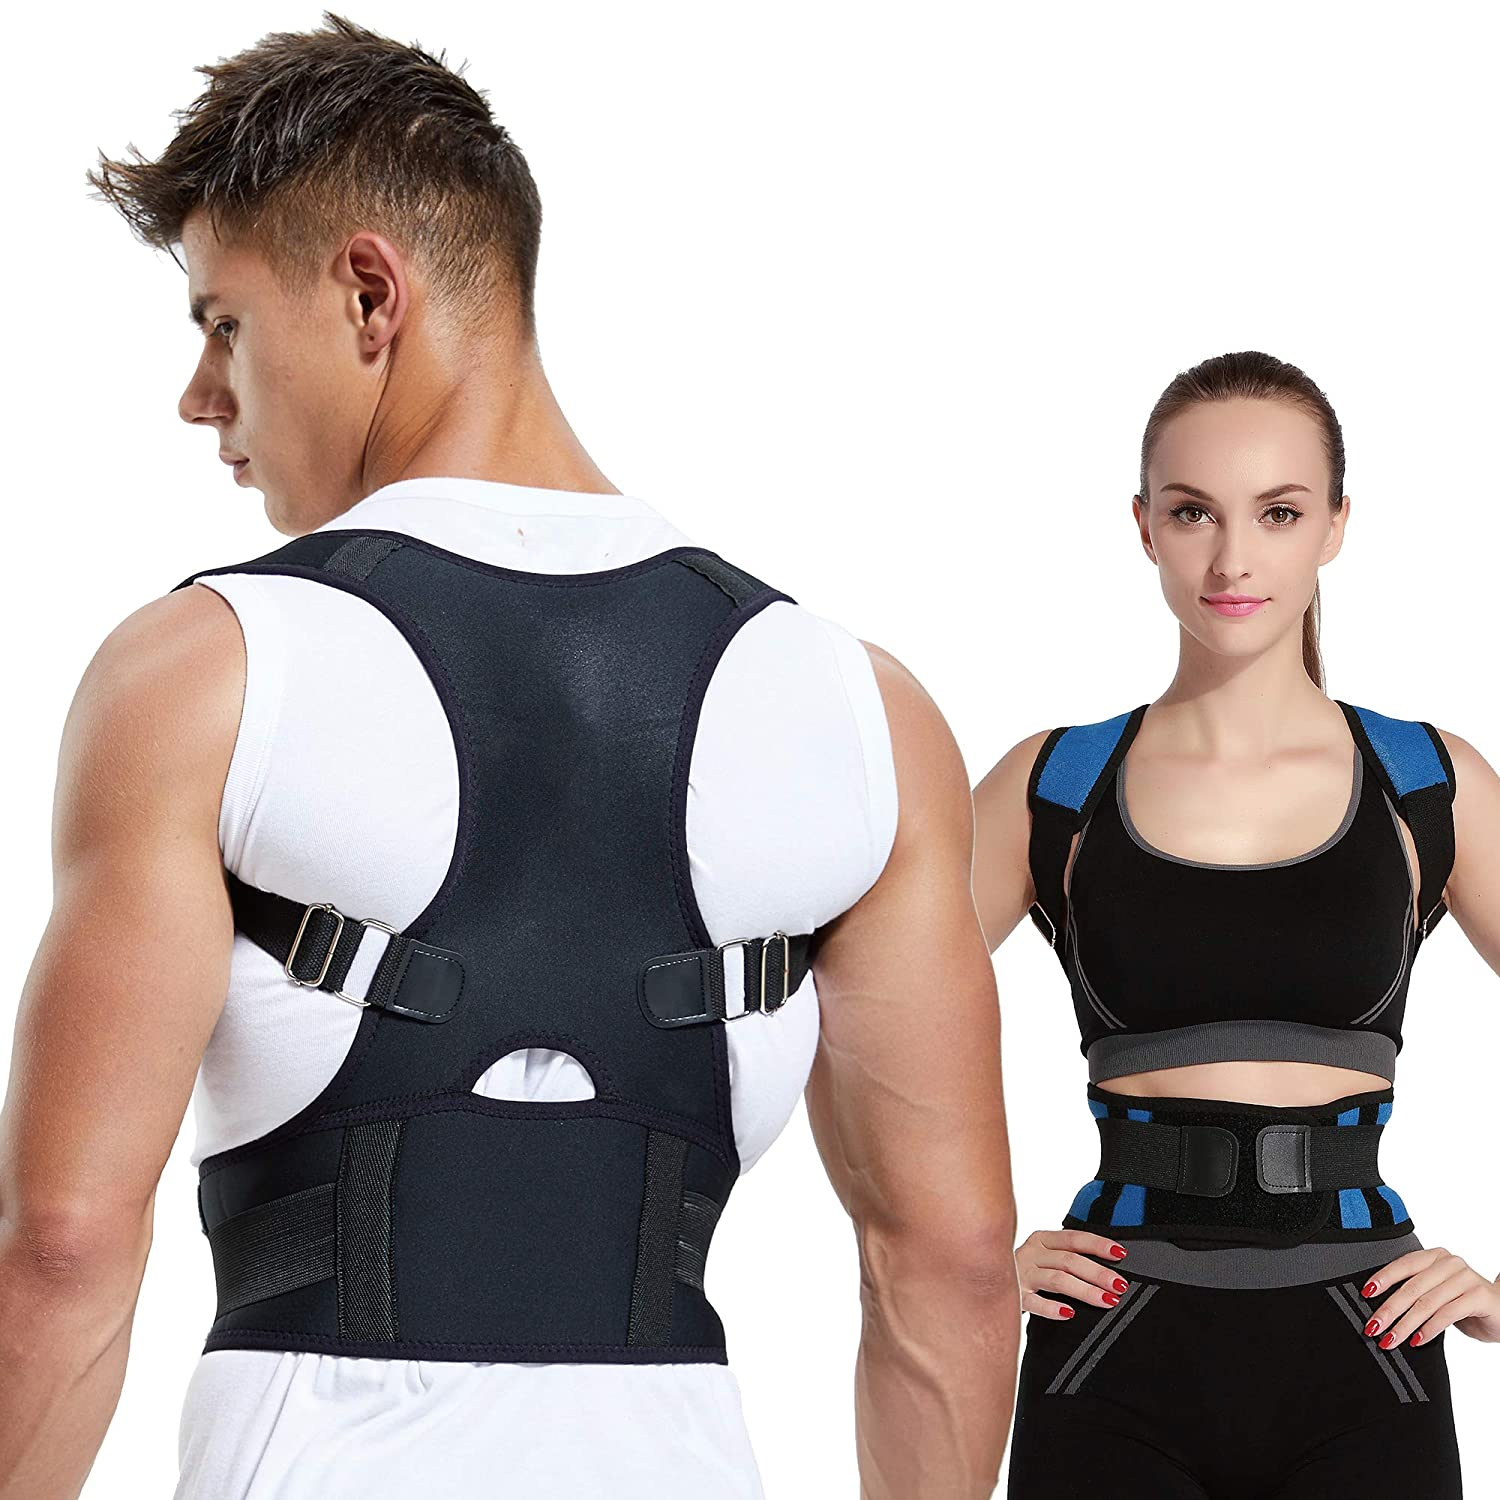 Best Posture Corrector 2020.Abble Posture Corrector For Men And Women Back Brace And Shoulder Support Trainer Improves Posture And Support Black Medium